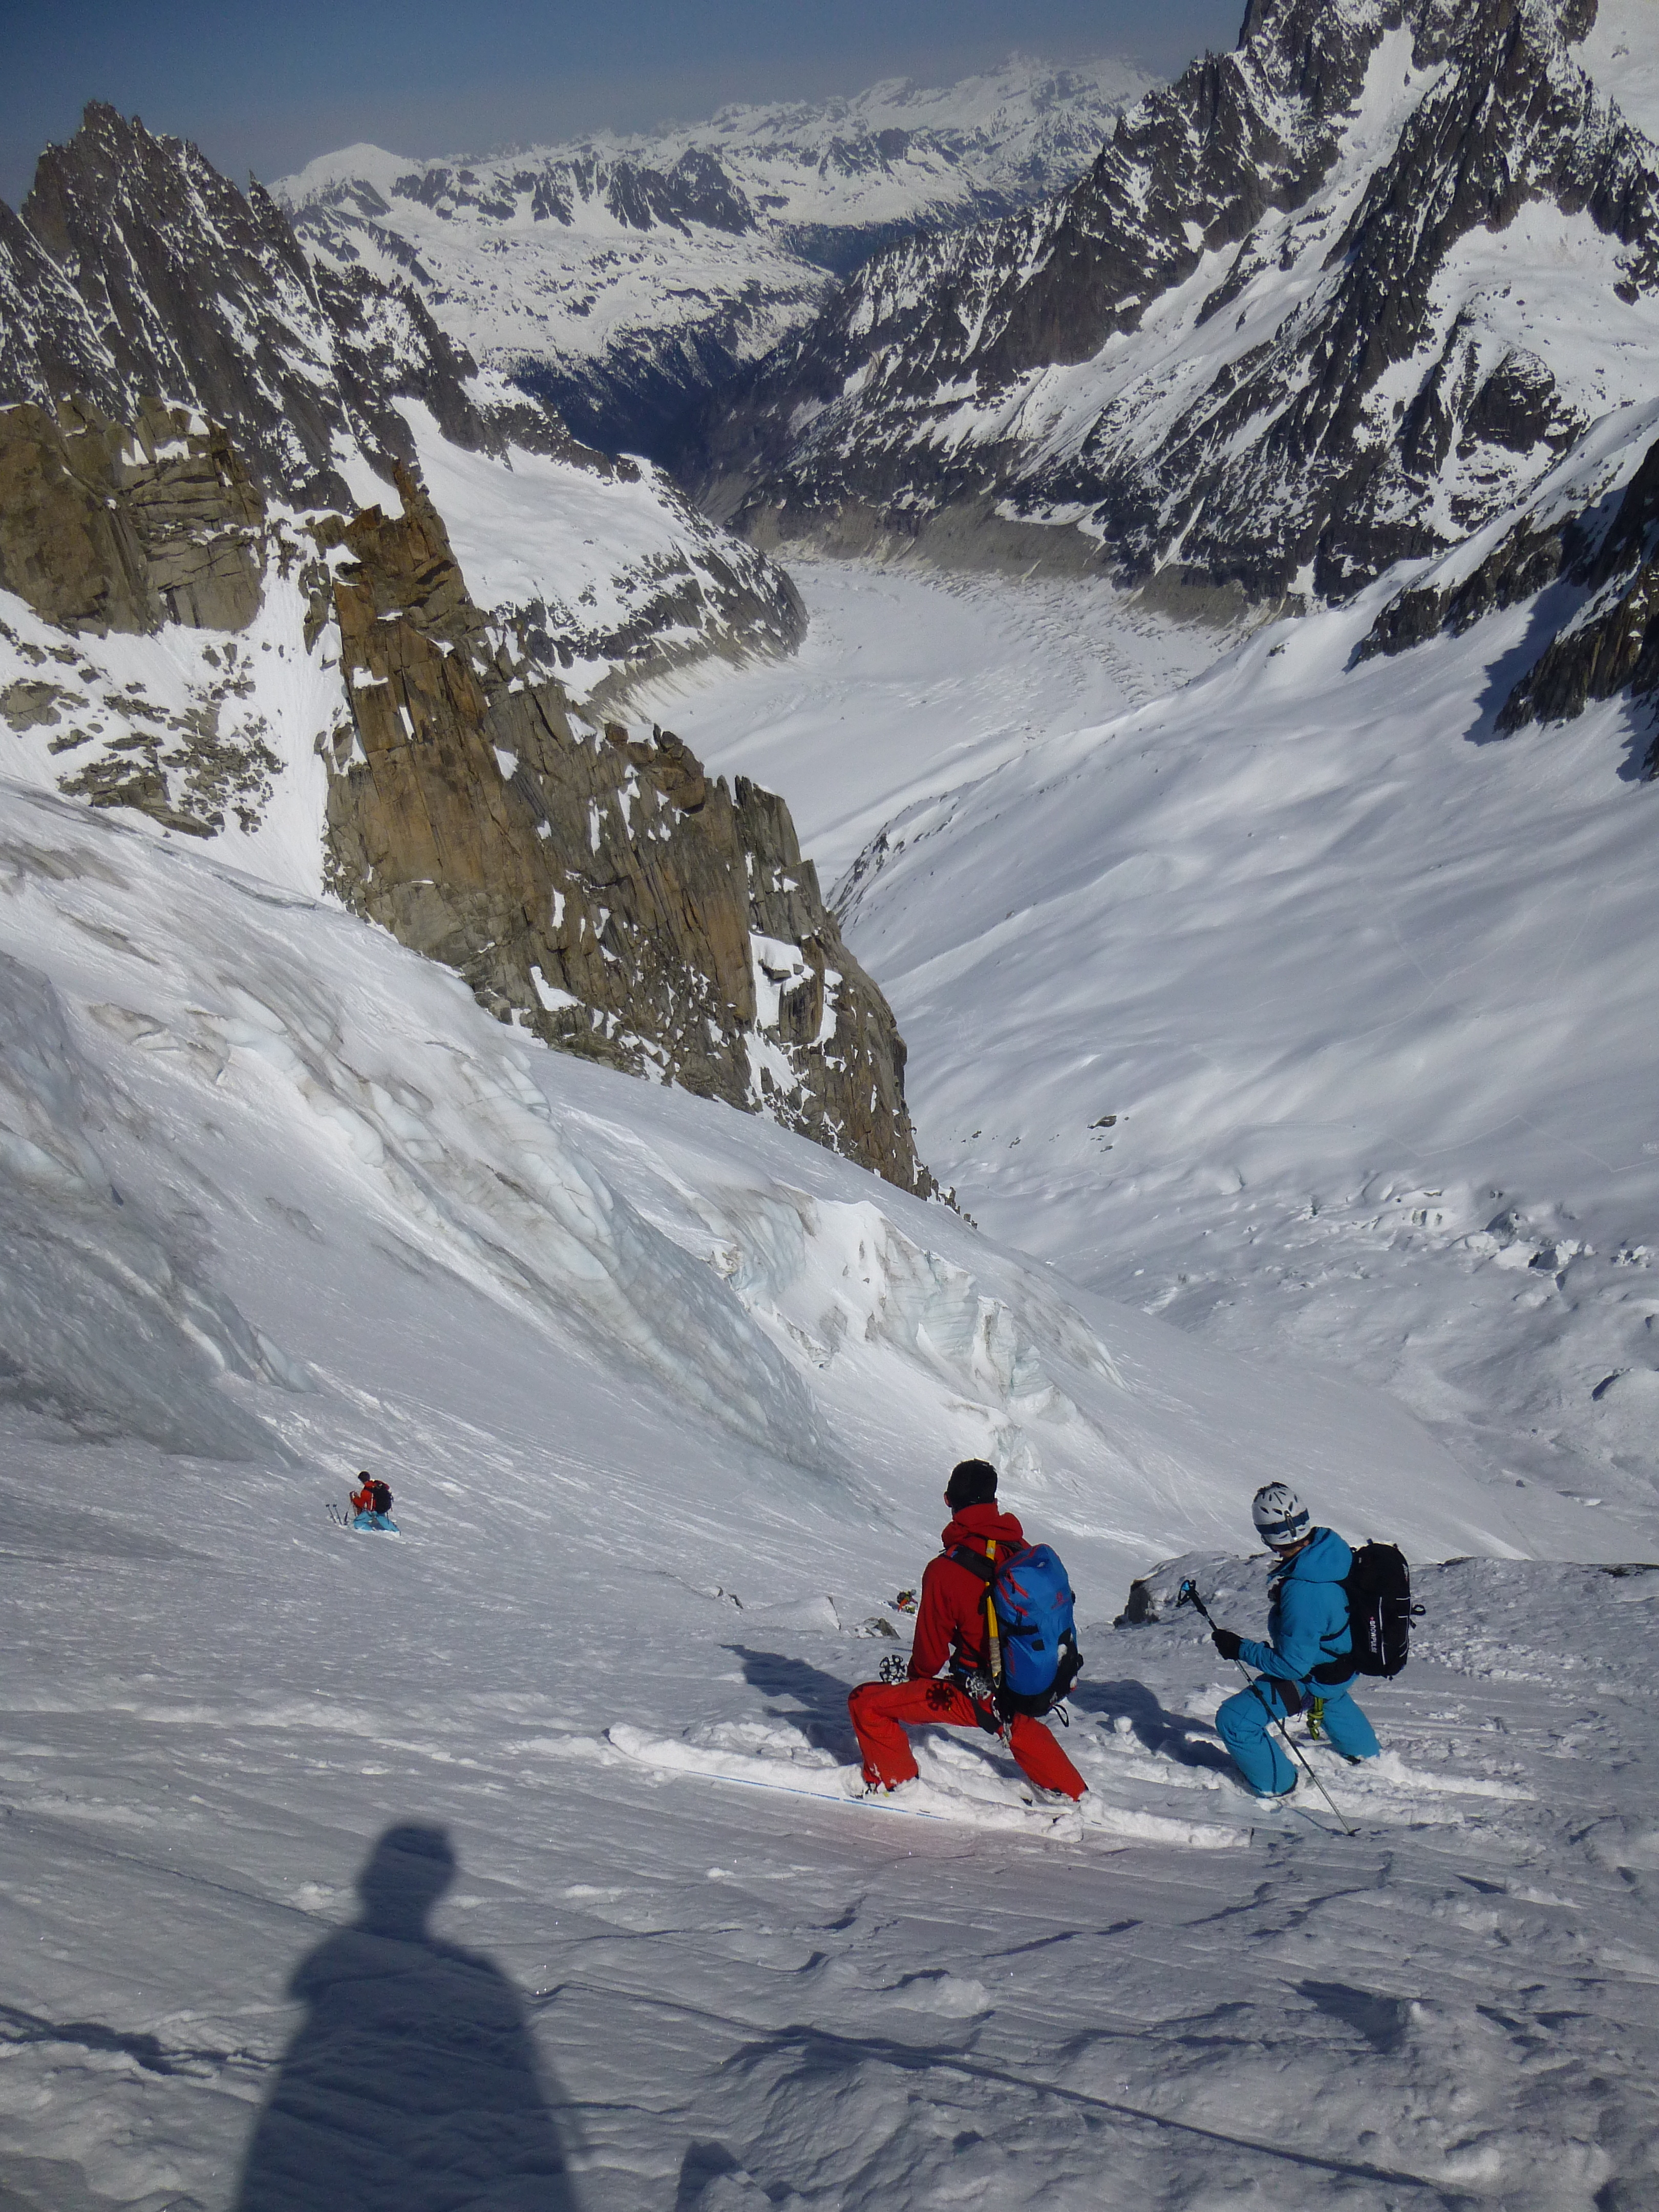 skiing the Glacier de la Noire with the Glacier de Periades and Mer de Glace below.